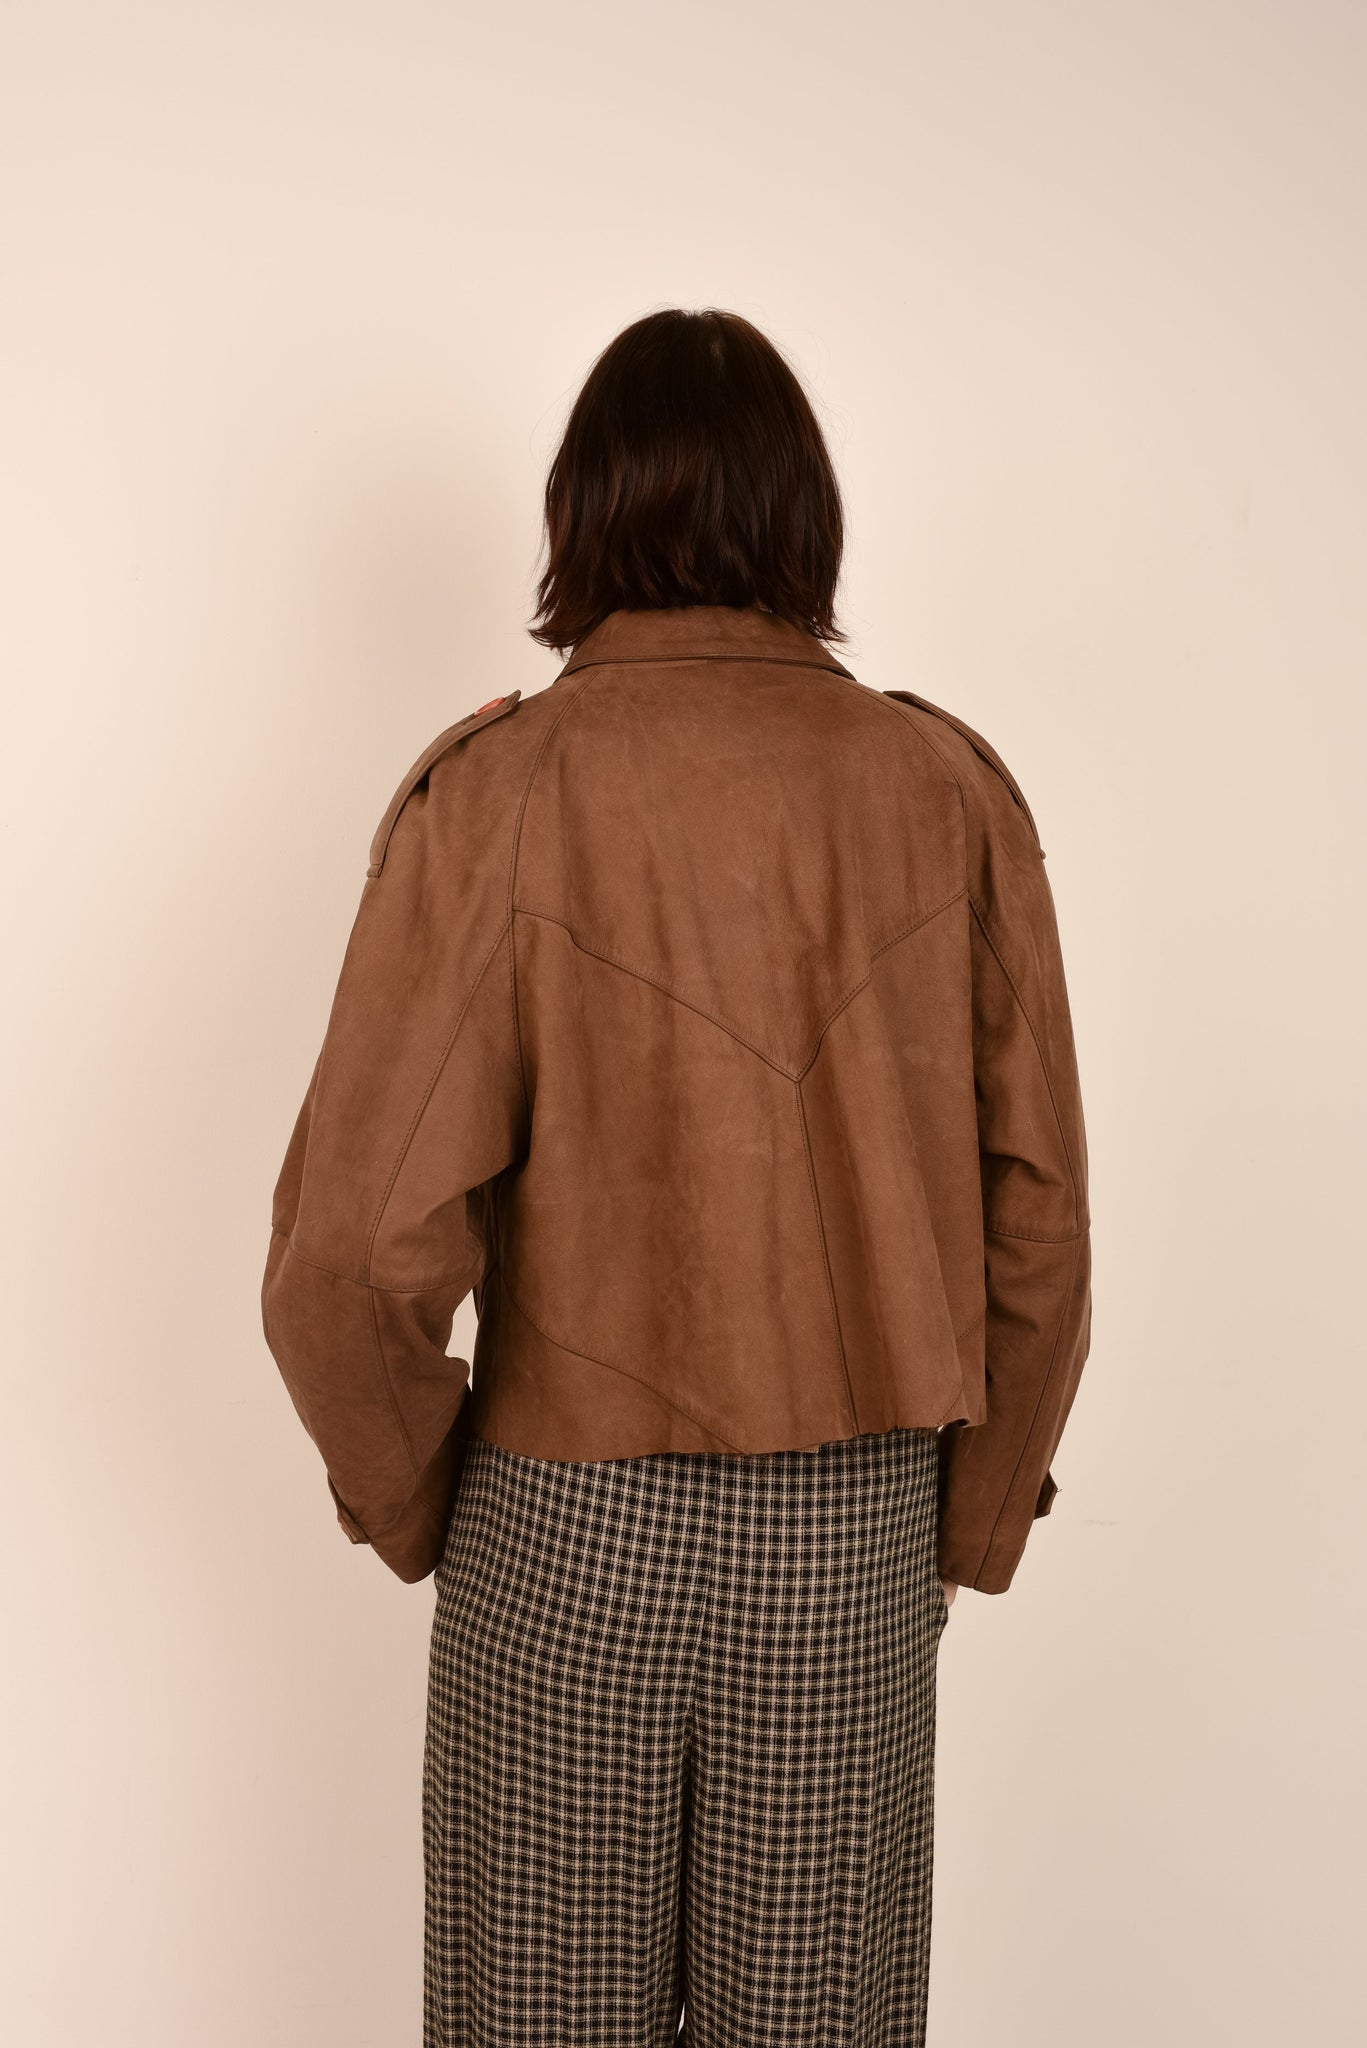 Vintage Coffee Oversized Cropped Geometric Leather Jacket / S - Closed Caption